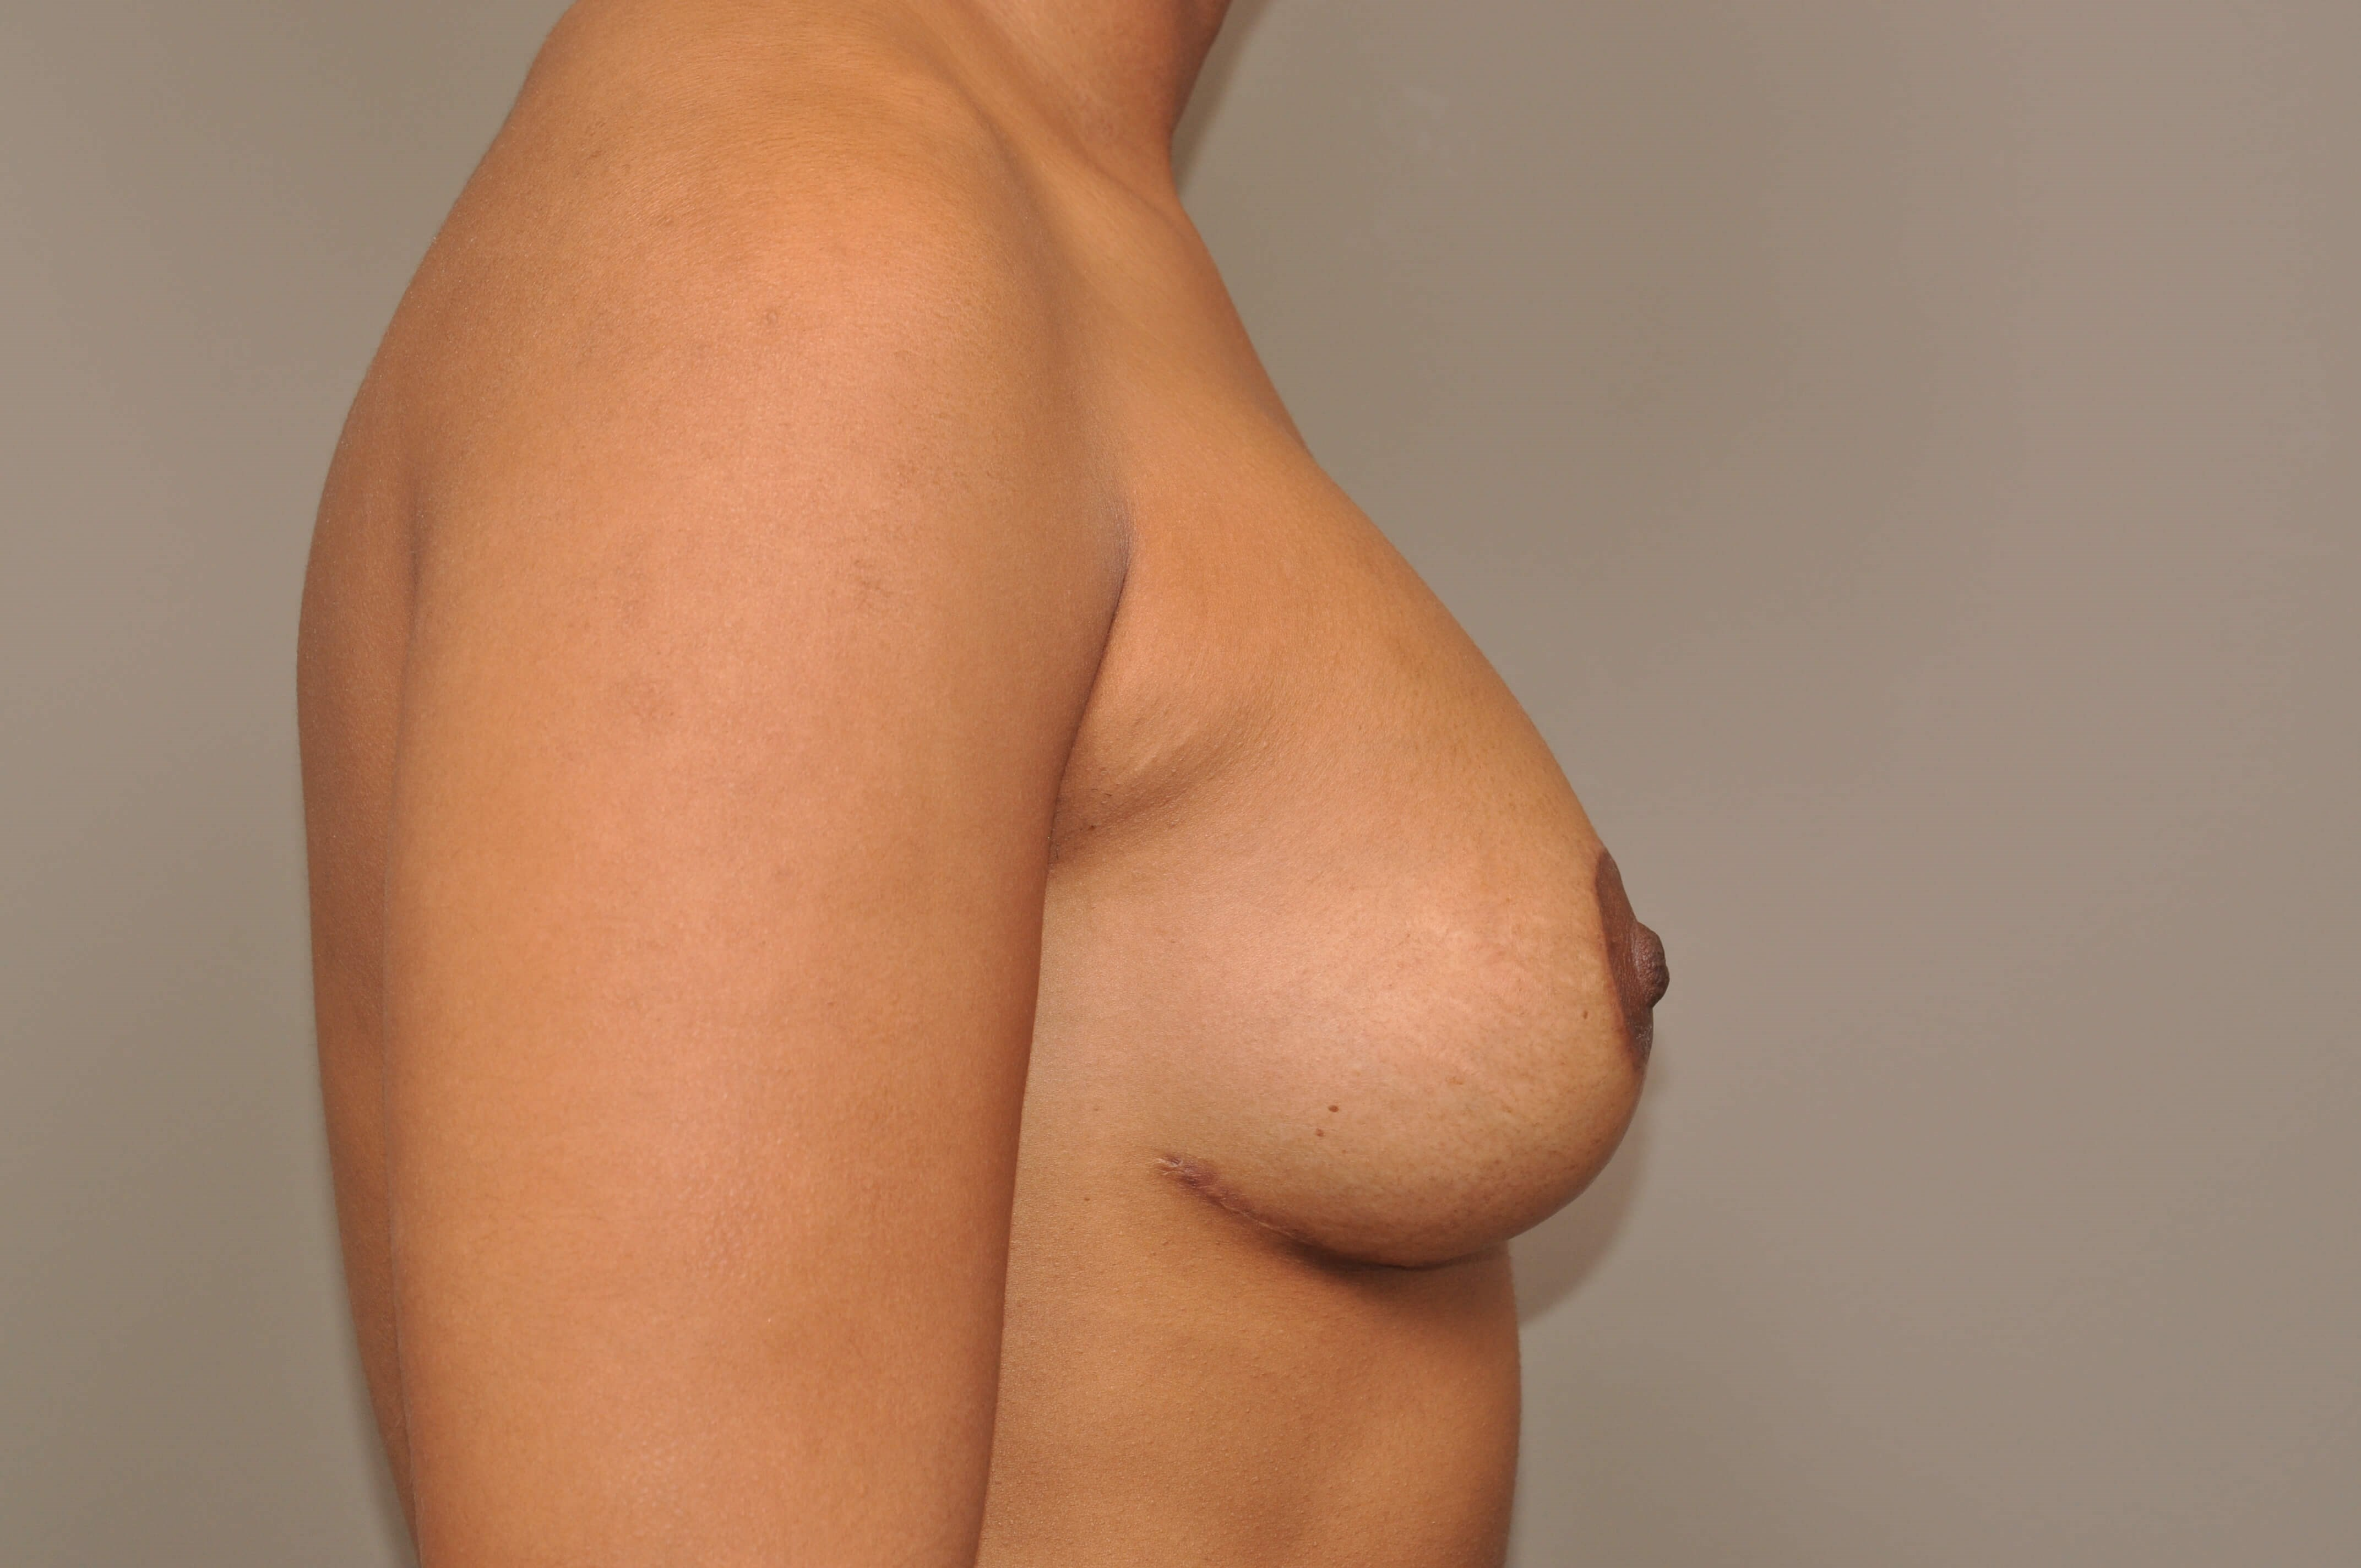 Mastopexy/Augmentation Side After